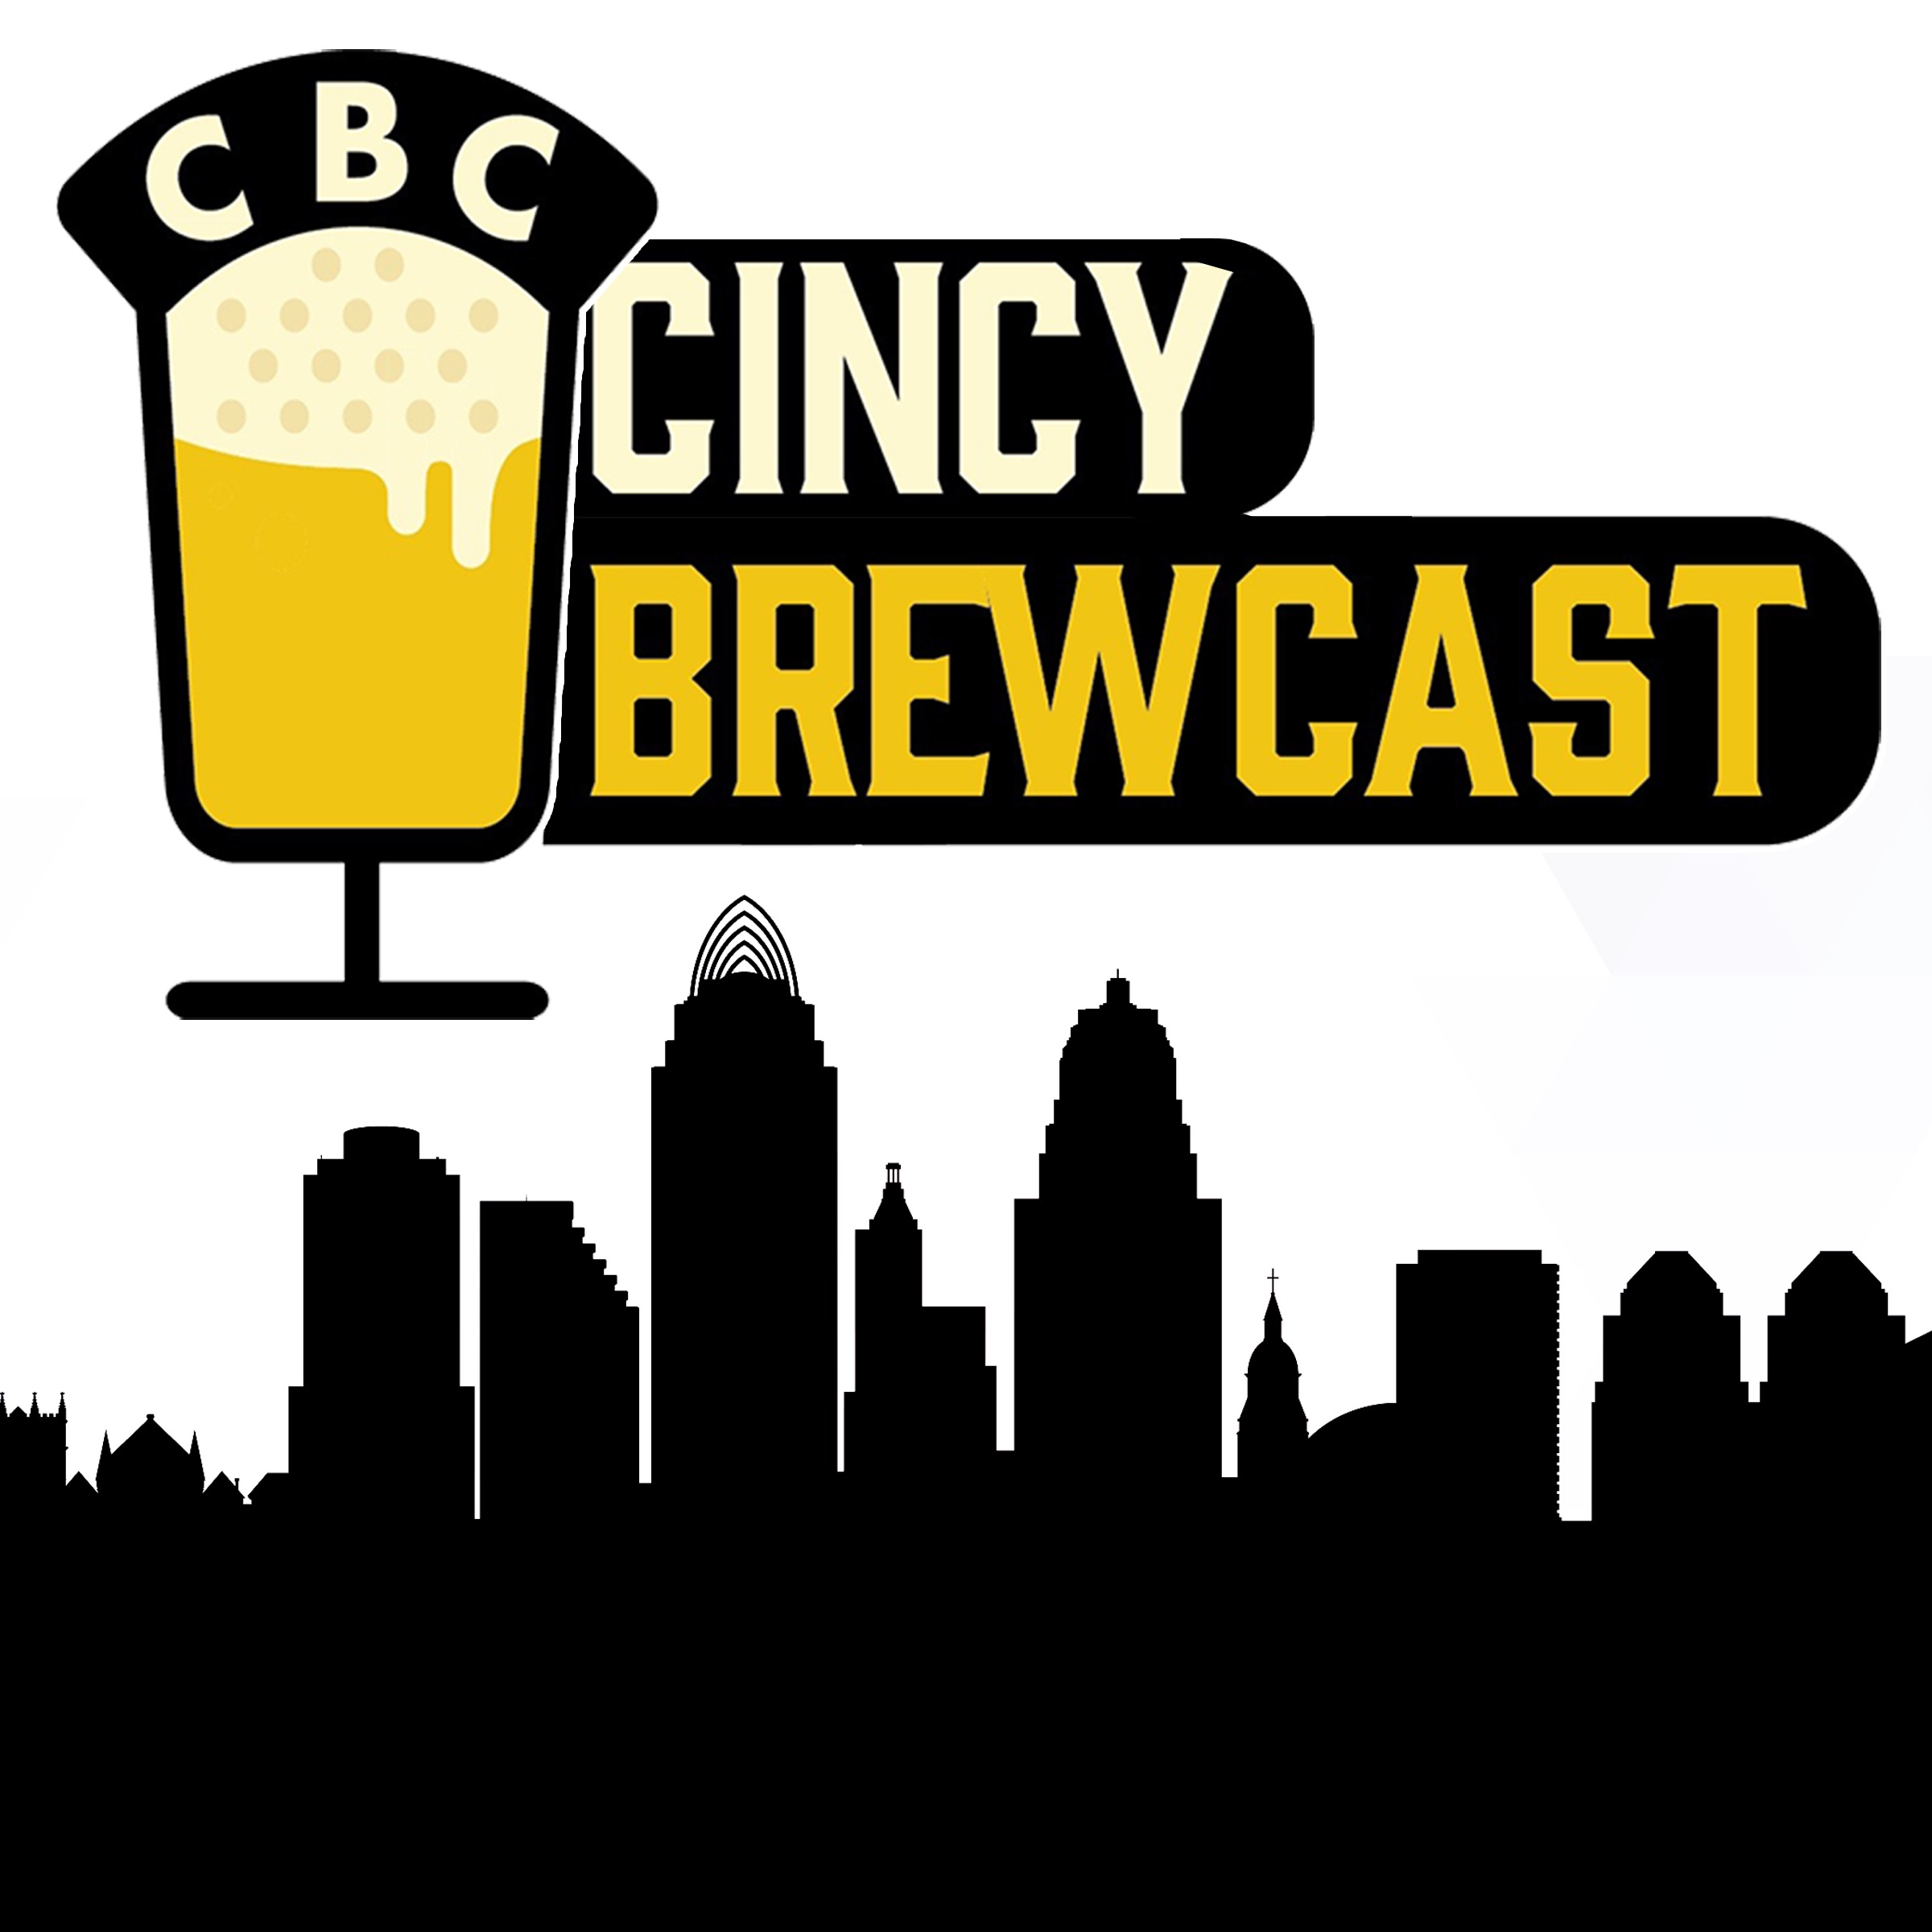 CincyBrewcast